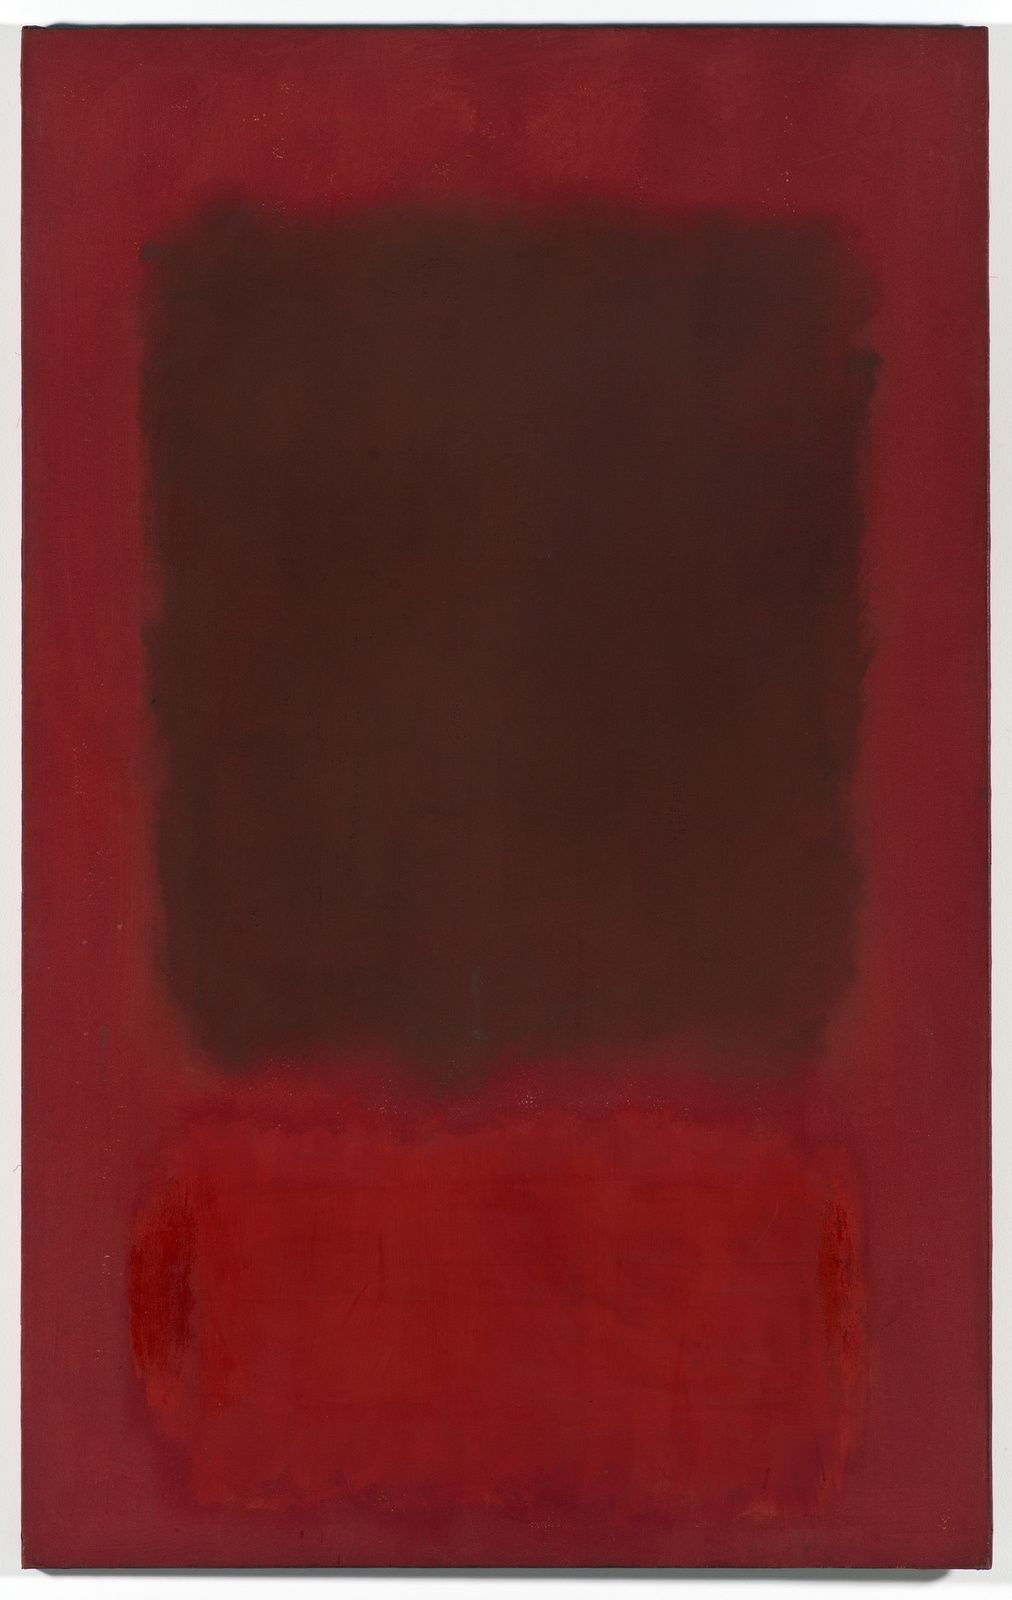 Mark Rothko (1903 - 1970). Red and Brown, 1957. Huile sur toile. 175, 26 x 109, 86 x 2, 54 cm. Los Angeles, The Museum of Contemporary Art, The Panza Collection © Kate Rothko Prizel & Christopher Rothko/ Artists Rights Society (ARS), New York, photo crédit Brian Forrest